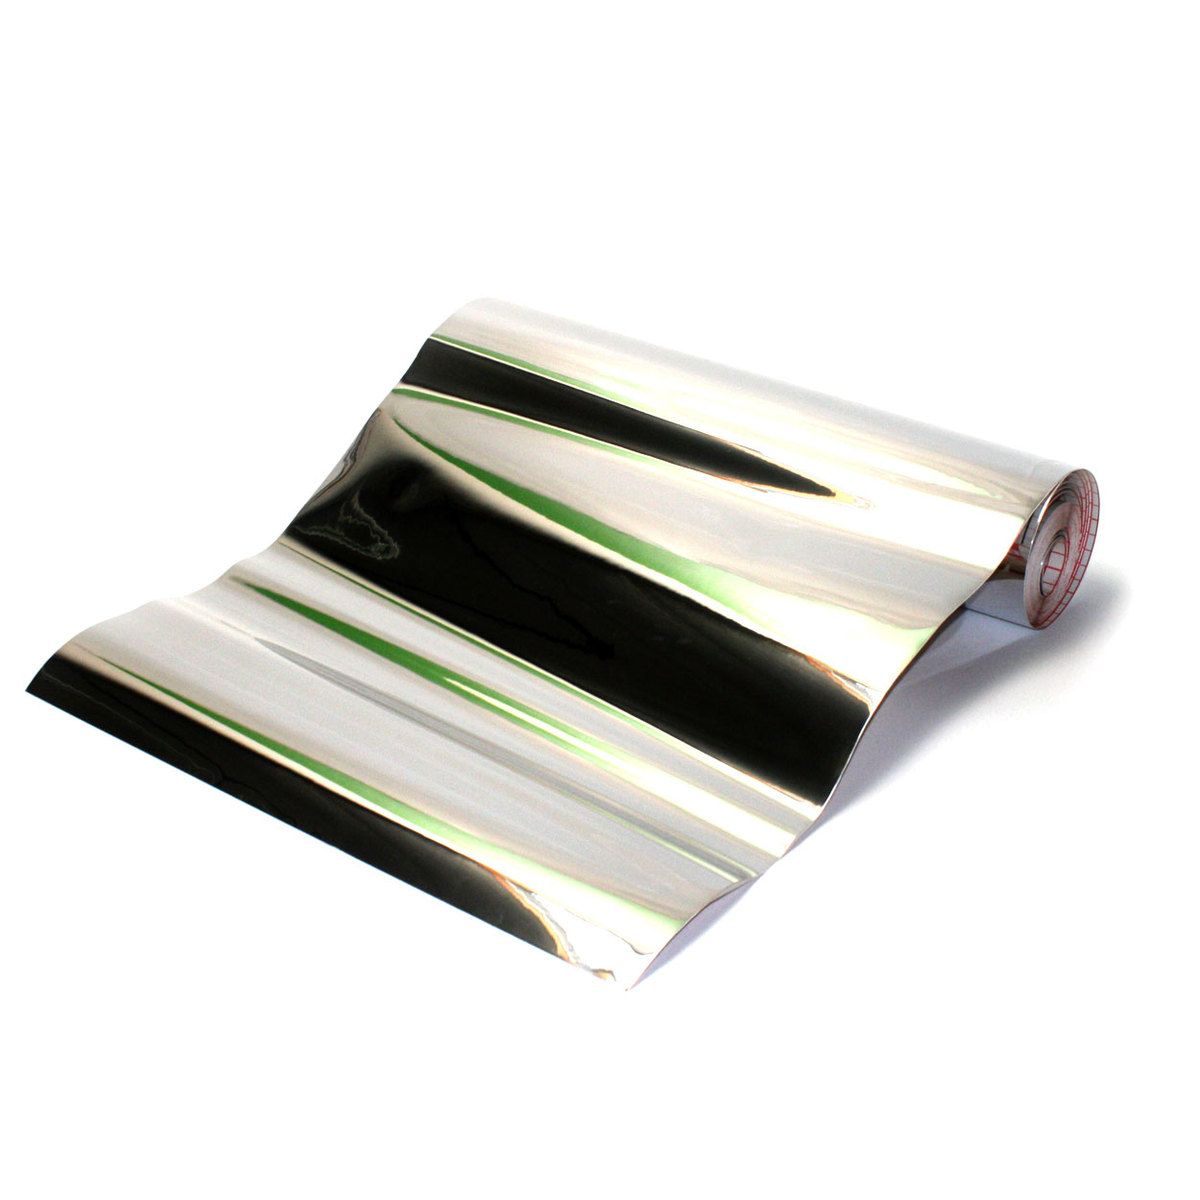 Mirror Effect Contact Paper Could Use It To Line The Inside Of Shelves For A Super Glam Look